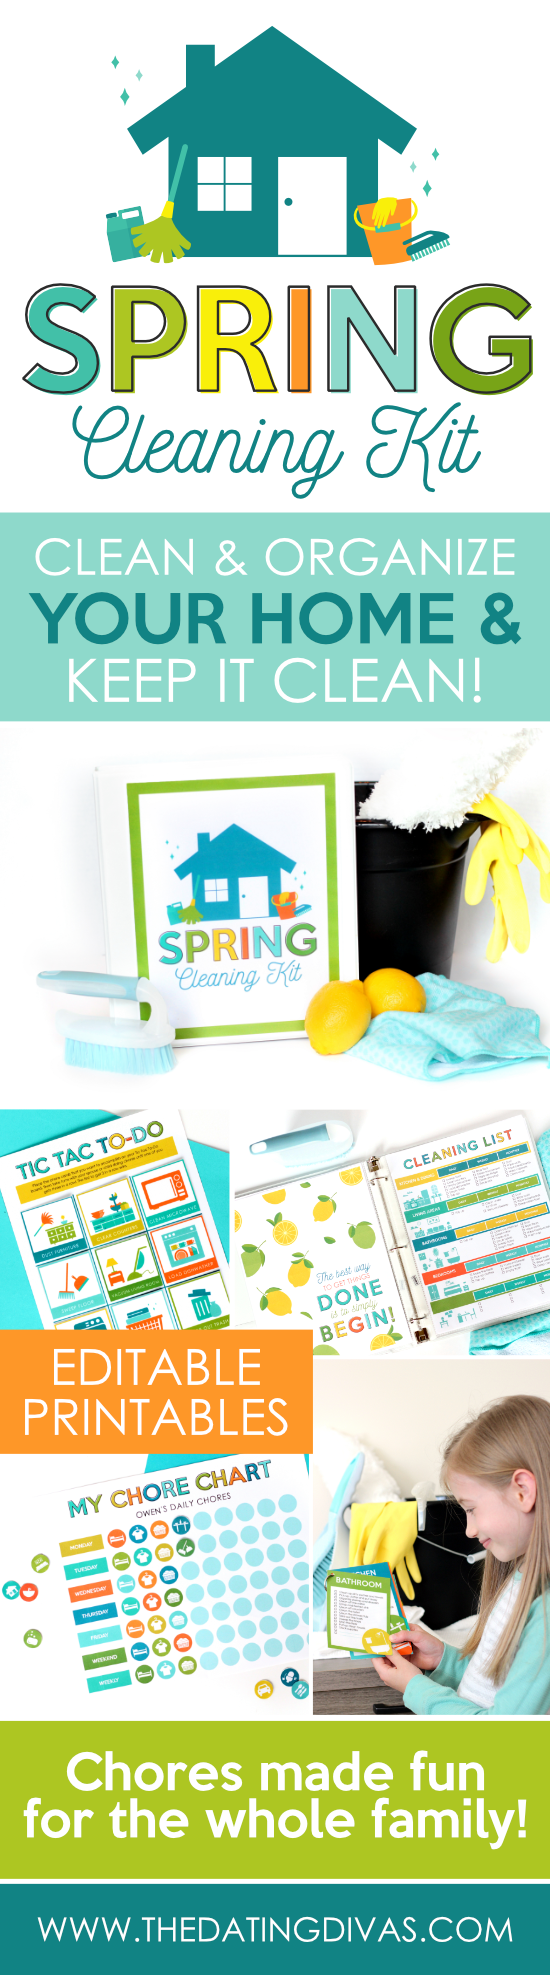 Spring Cleaning Kit Chores Made Fun #SpringCleaning #ChoreCharts #CleaningMadeFun